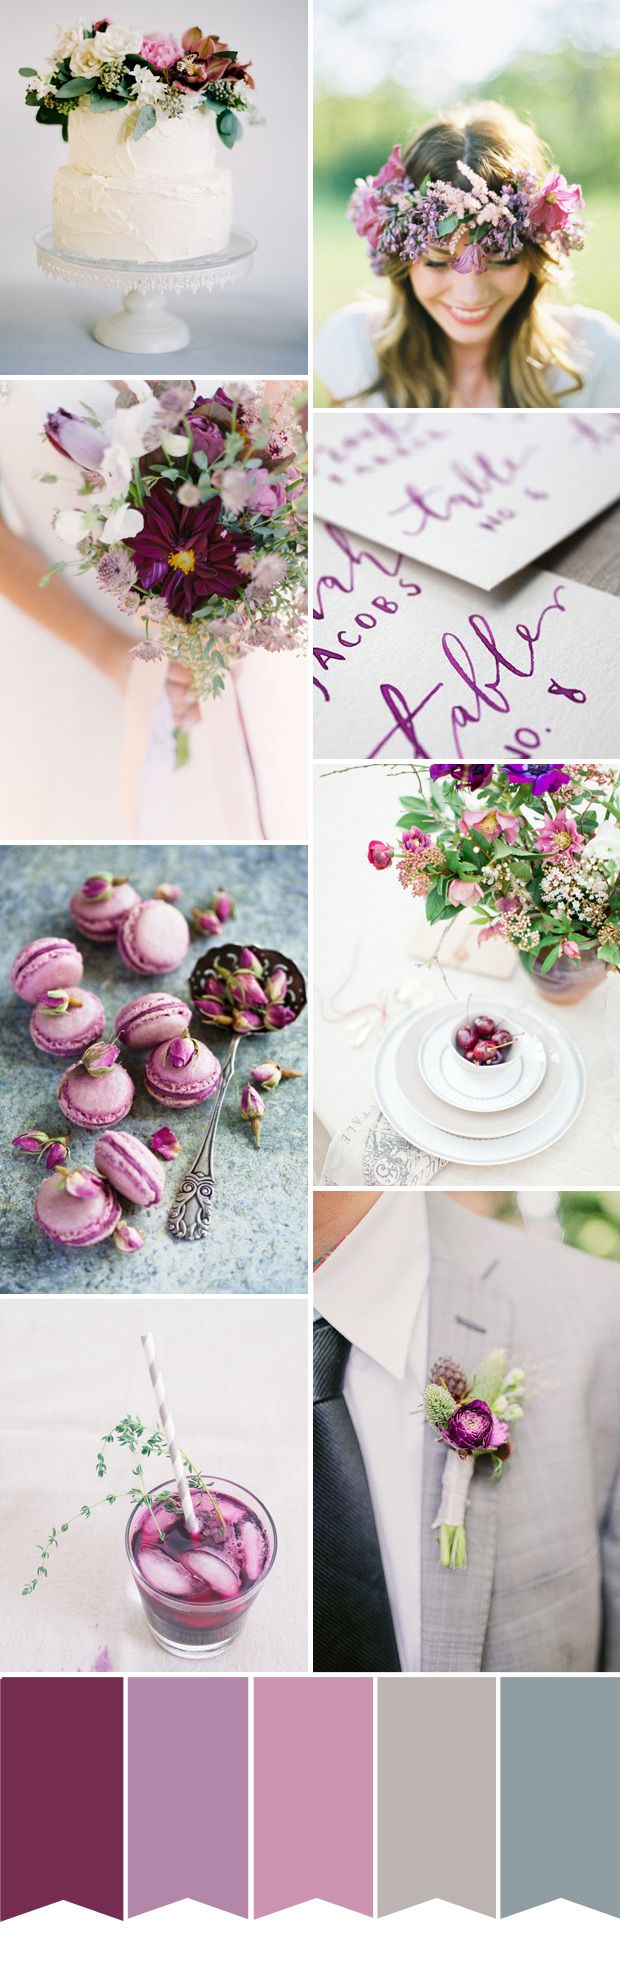 Pantone Colour of the Year - Radiant Orchid Wedding Inspiration | onefabday.com Wedding Inspiration - View our galleries www.oneevent.com.au/galleries. #wedding #engaged #invitations